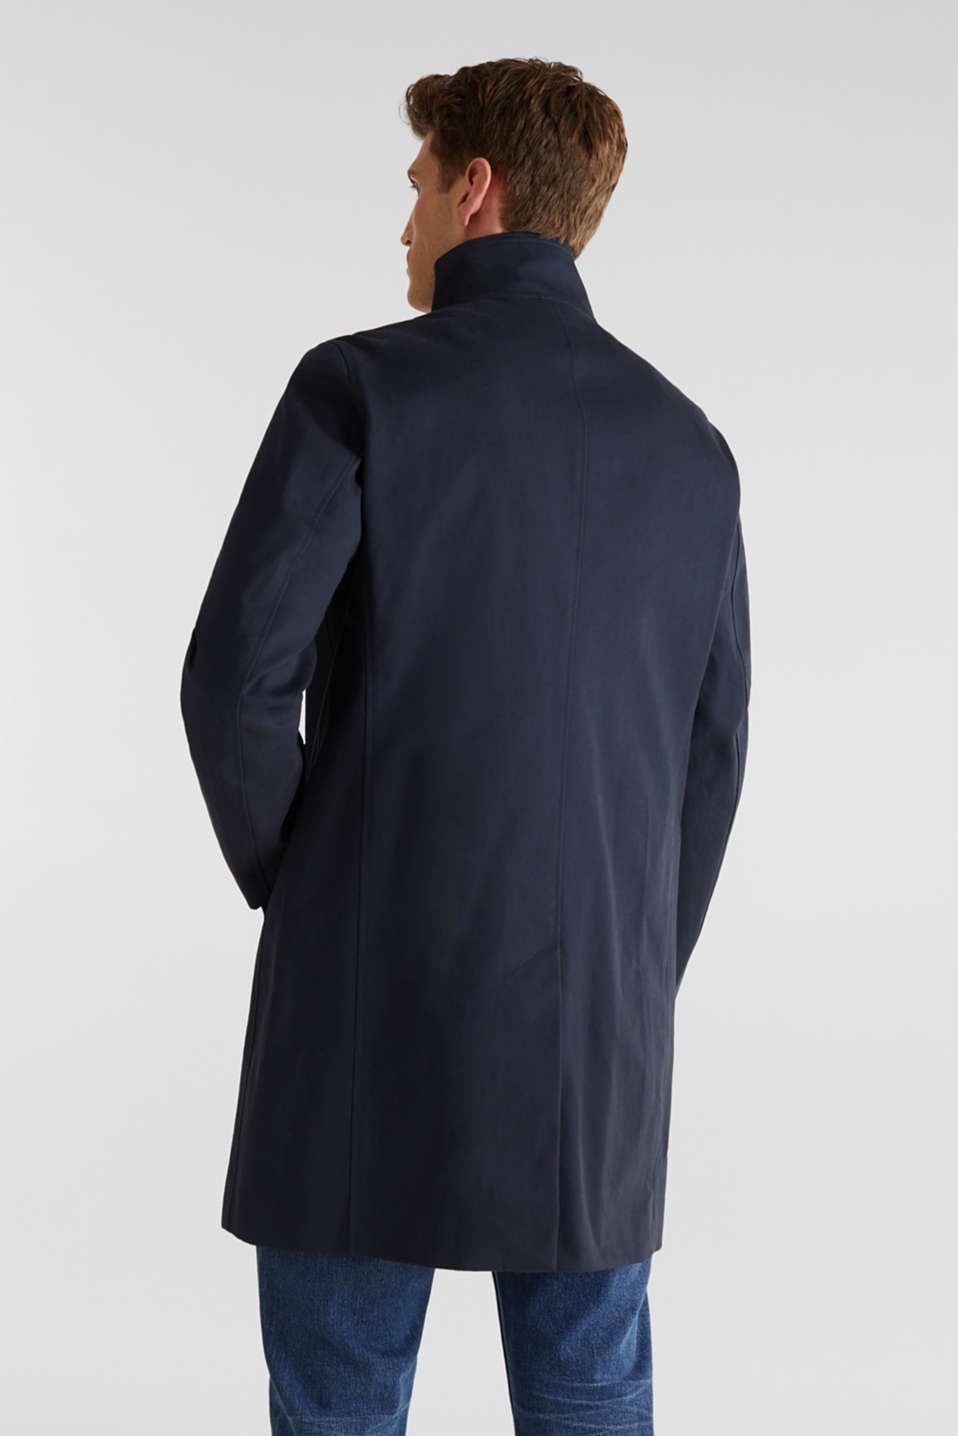 Coat with a stand-up collar, 100% cotton, DARK BLUE, detail image number 2